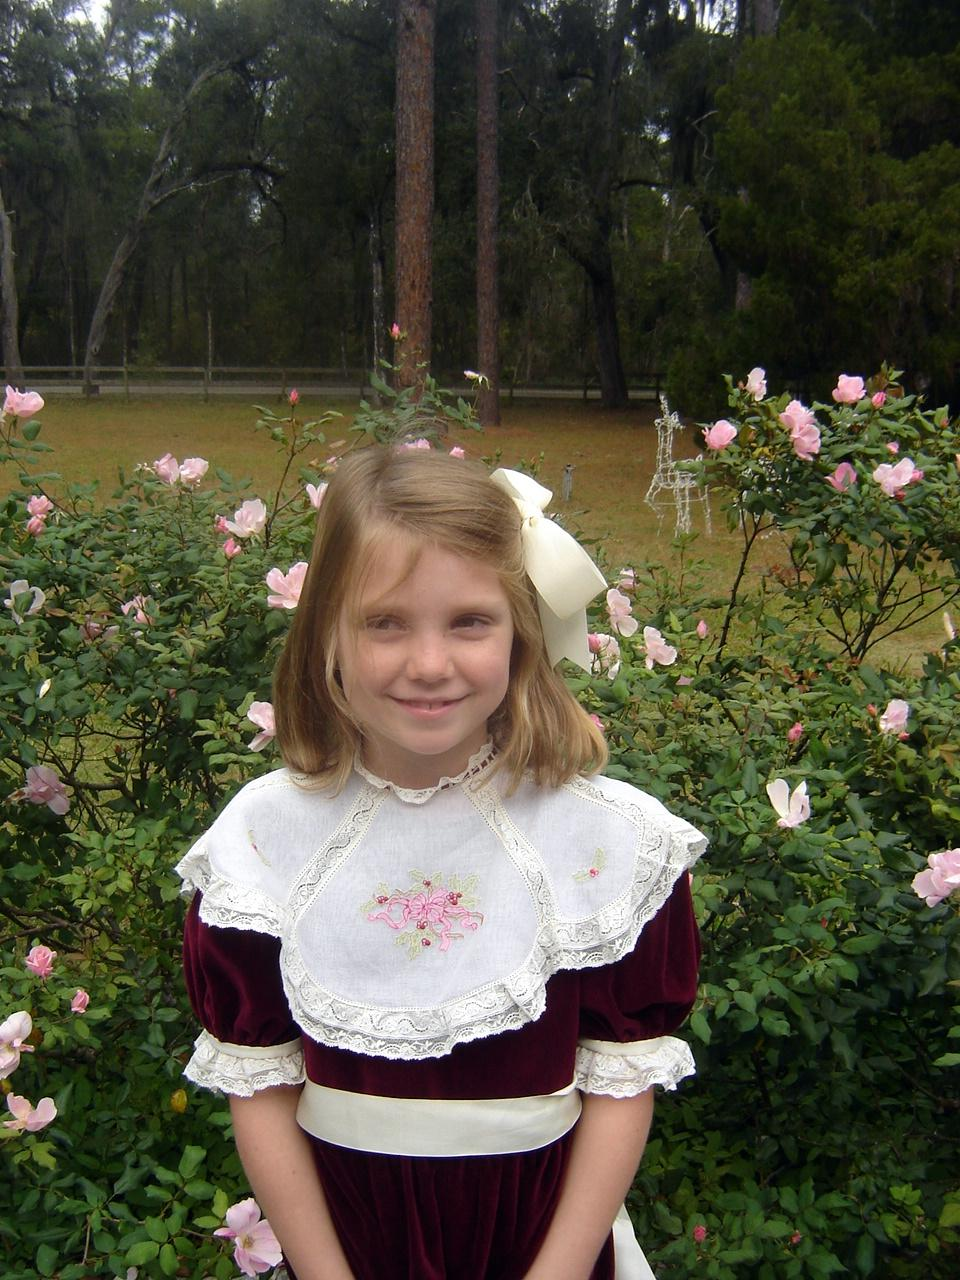 Laurel before church with lace